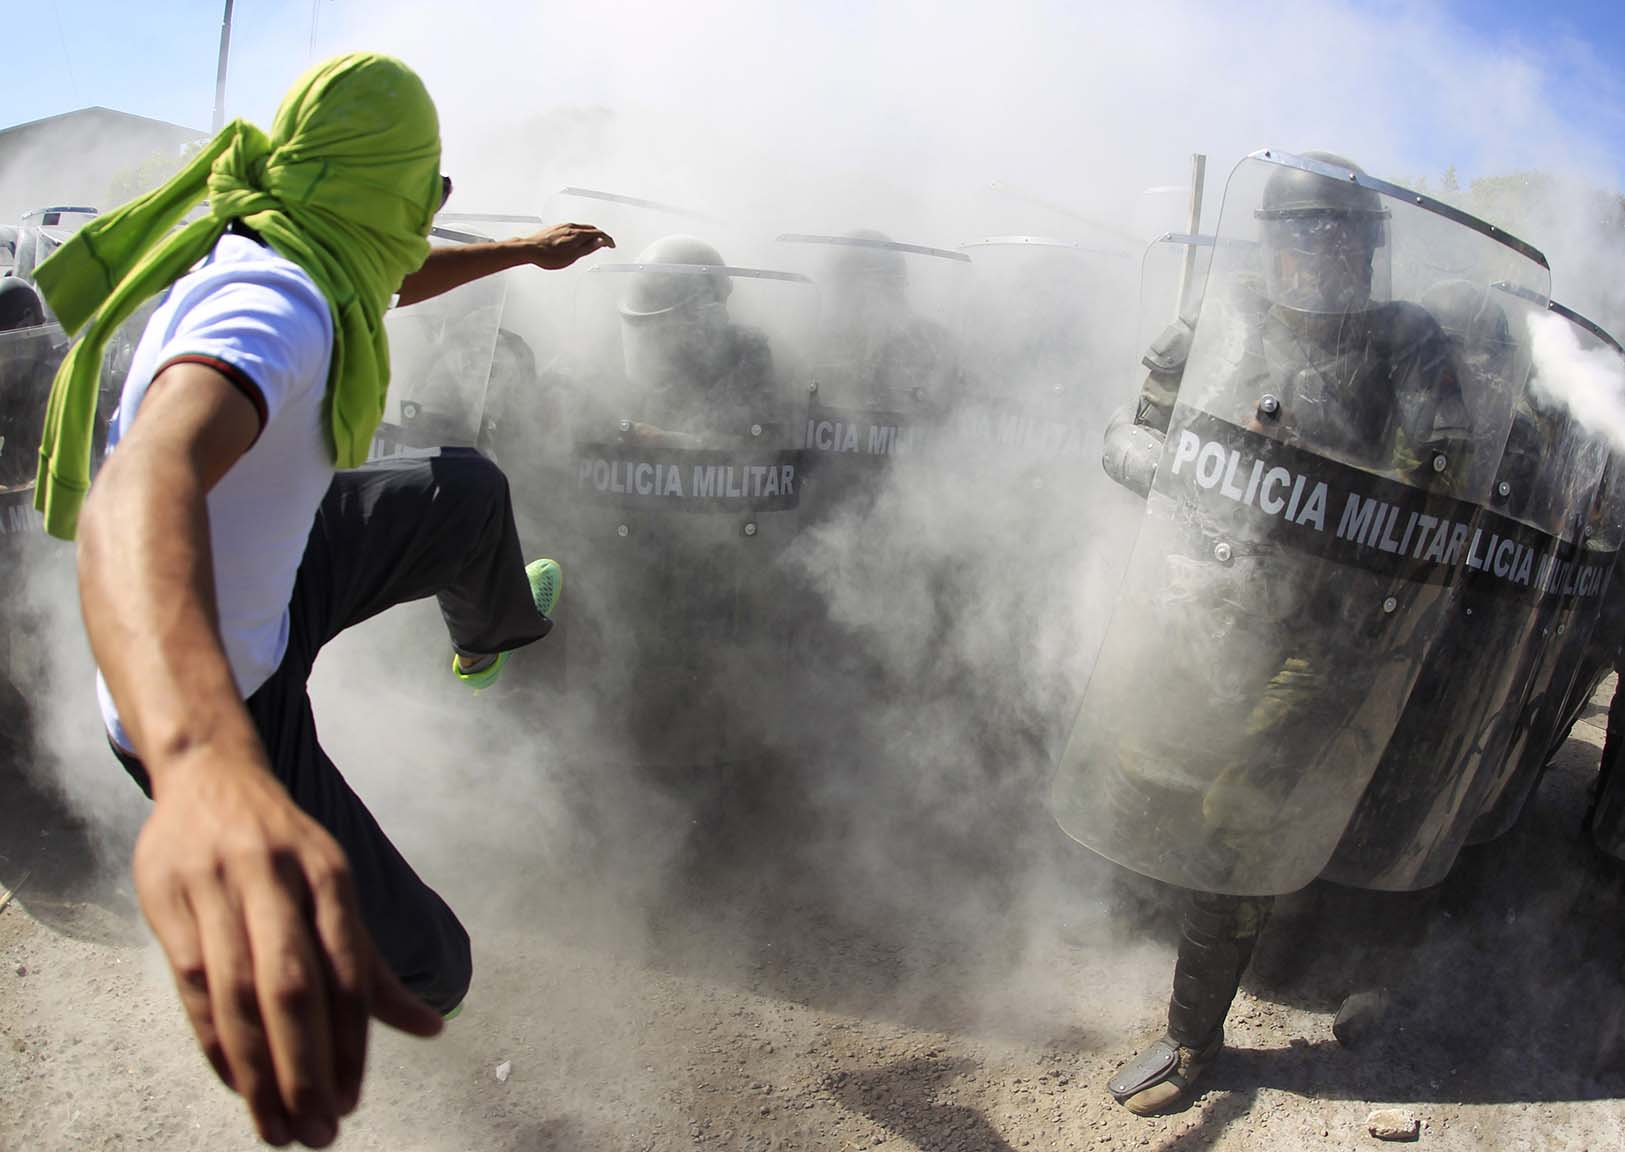 Activist kicks the shields of the military police officers during a demonstration in the military zone of the 27th infantry battalion in Iguala, Guerrero